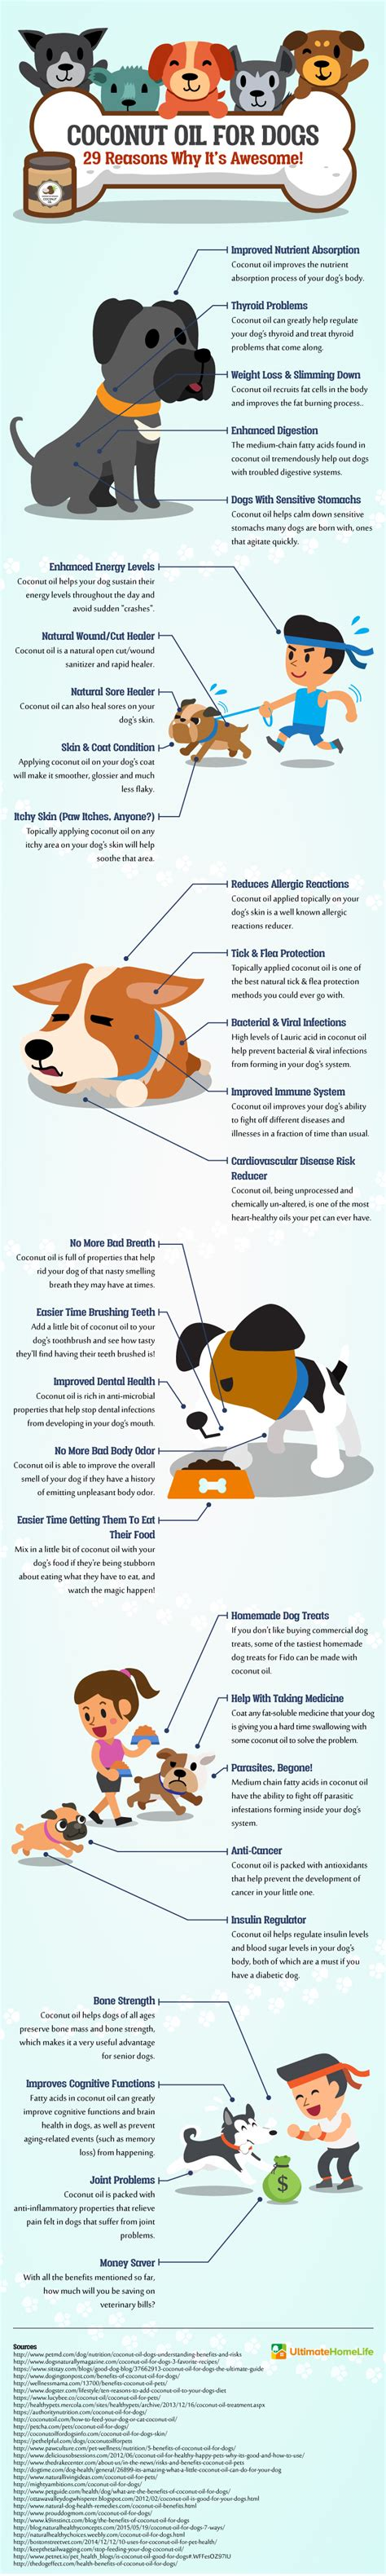 coconut bad for dogs the 29 benefits of coconut for dogs infographic